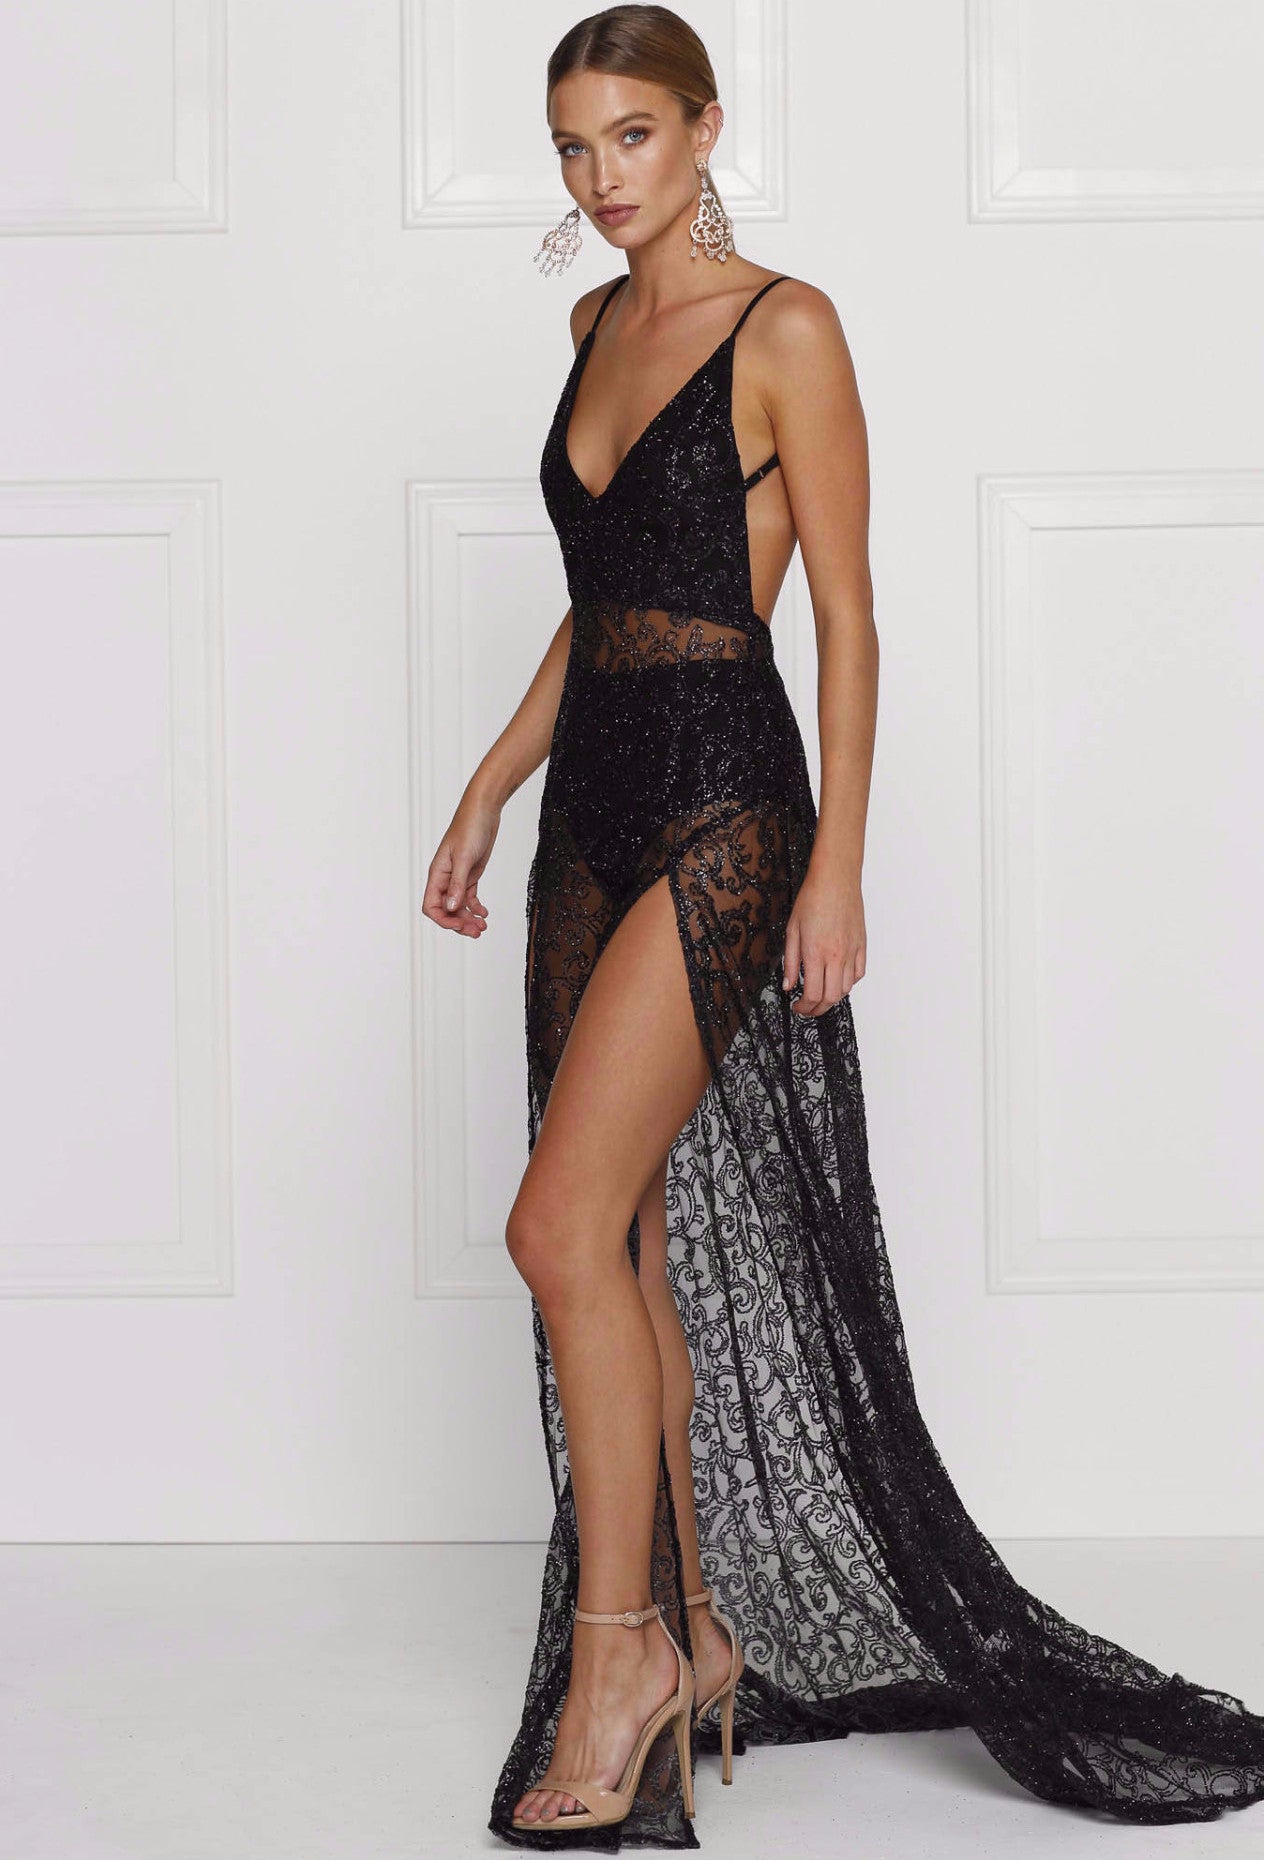 Rozay Gown - Black - Lovecy - 1